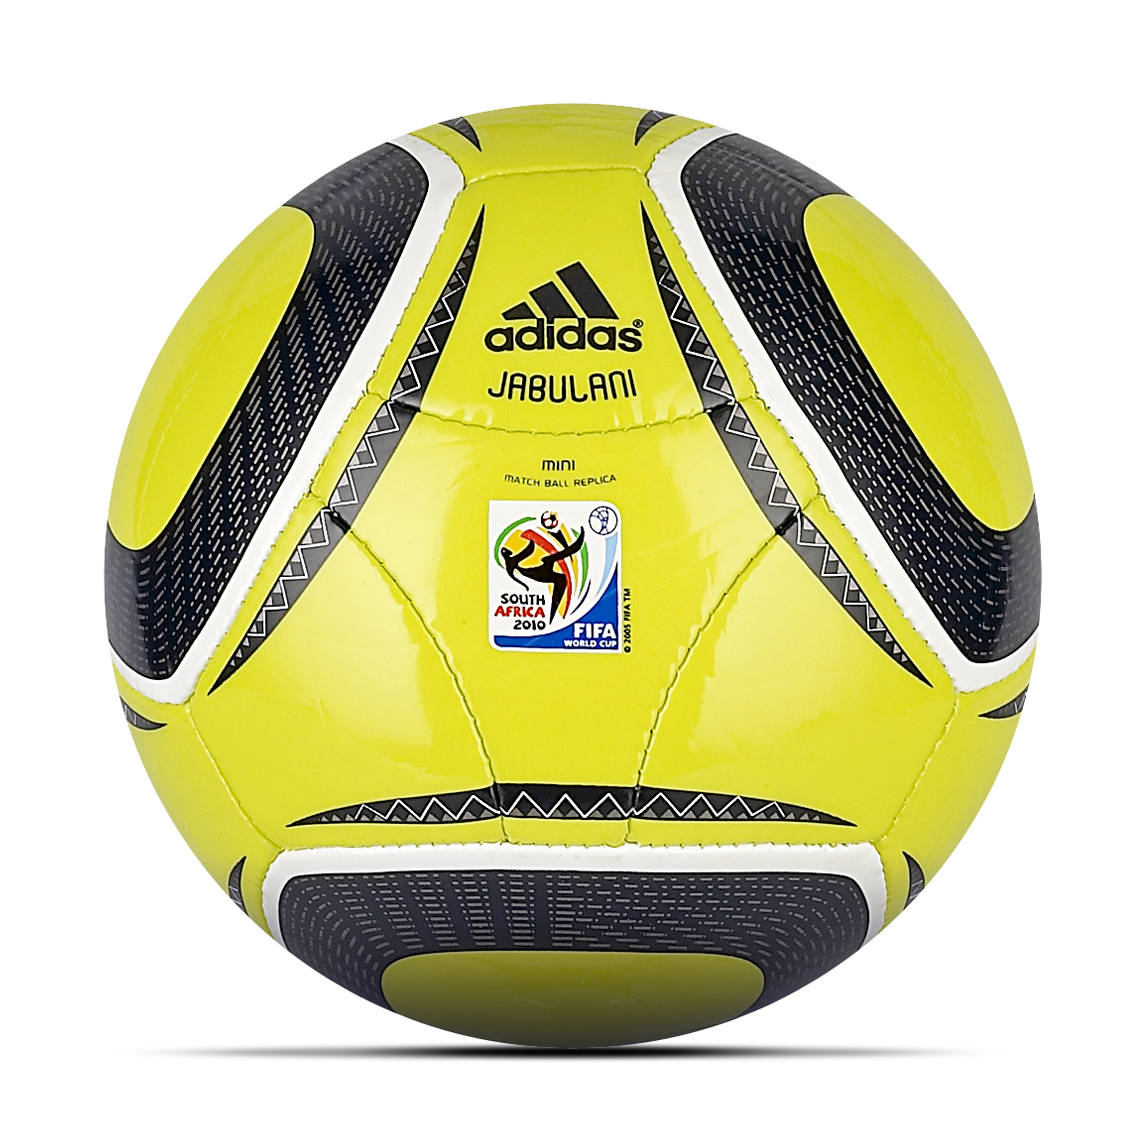 adidas World Cup 2010 Miniball - Size 1